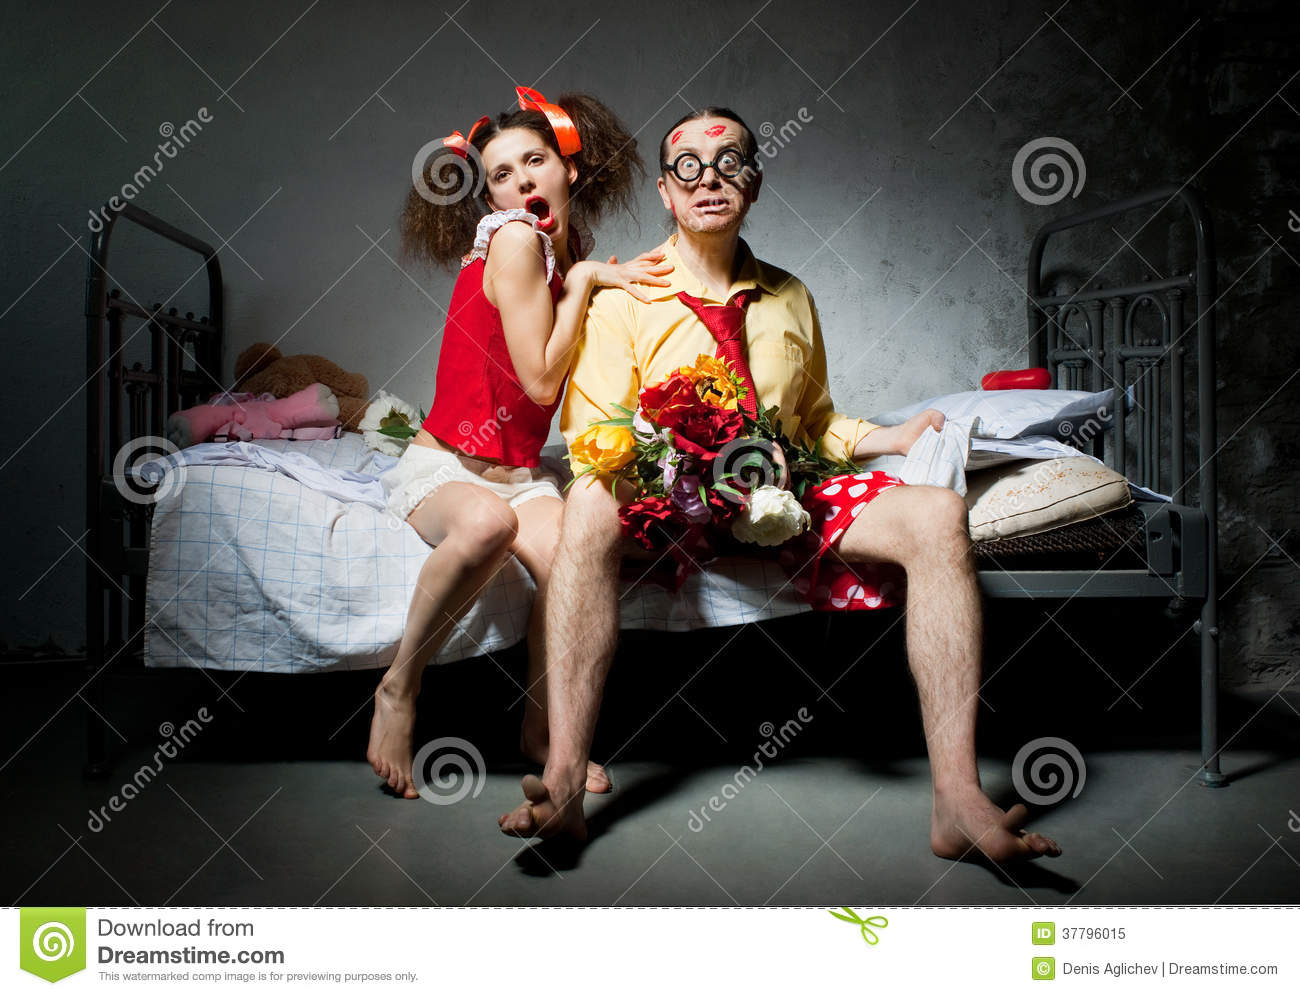 couples amoureux sur le lit photo libre de droits image 37796015. Black Bedroom Furniture Sets. Home Design Ideas